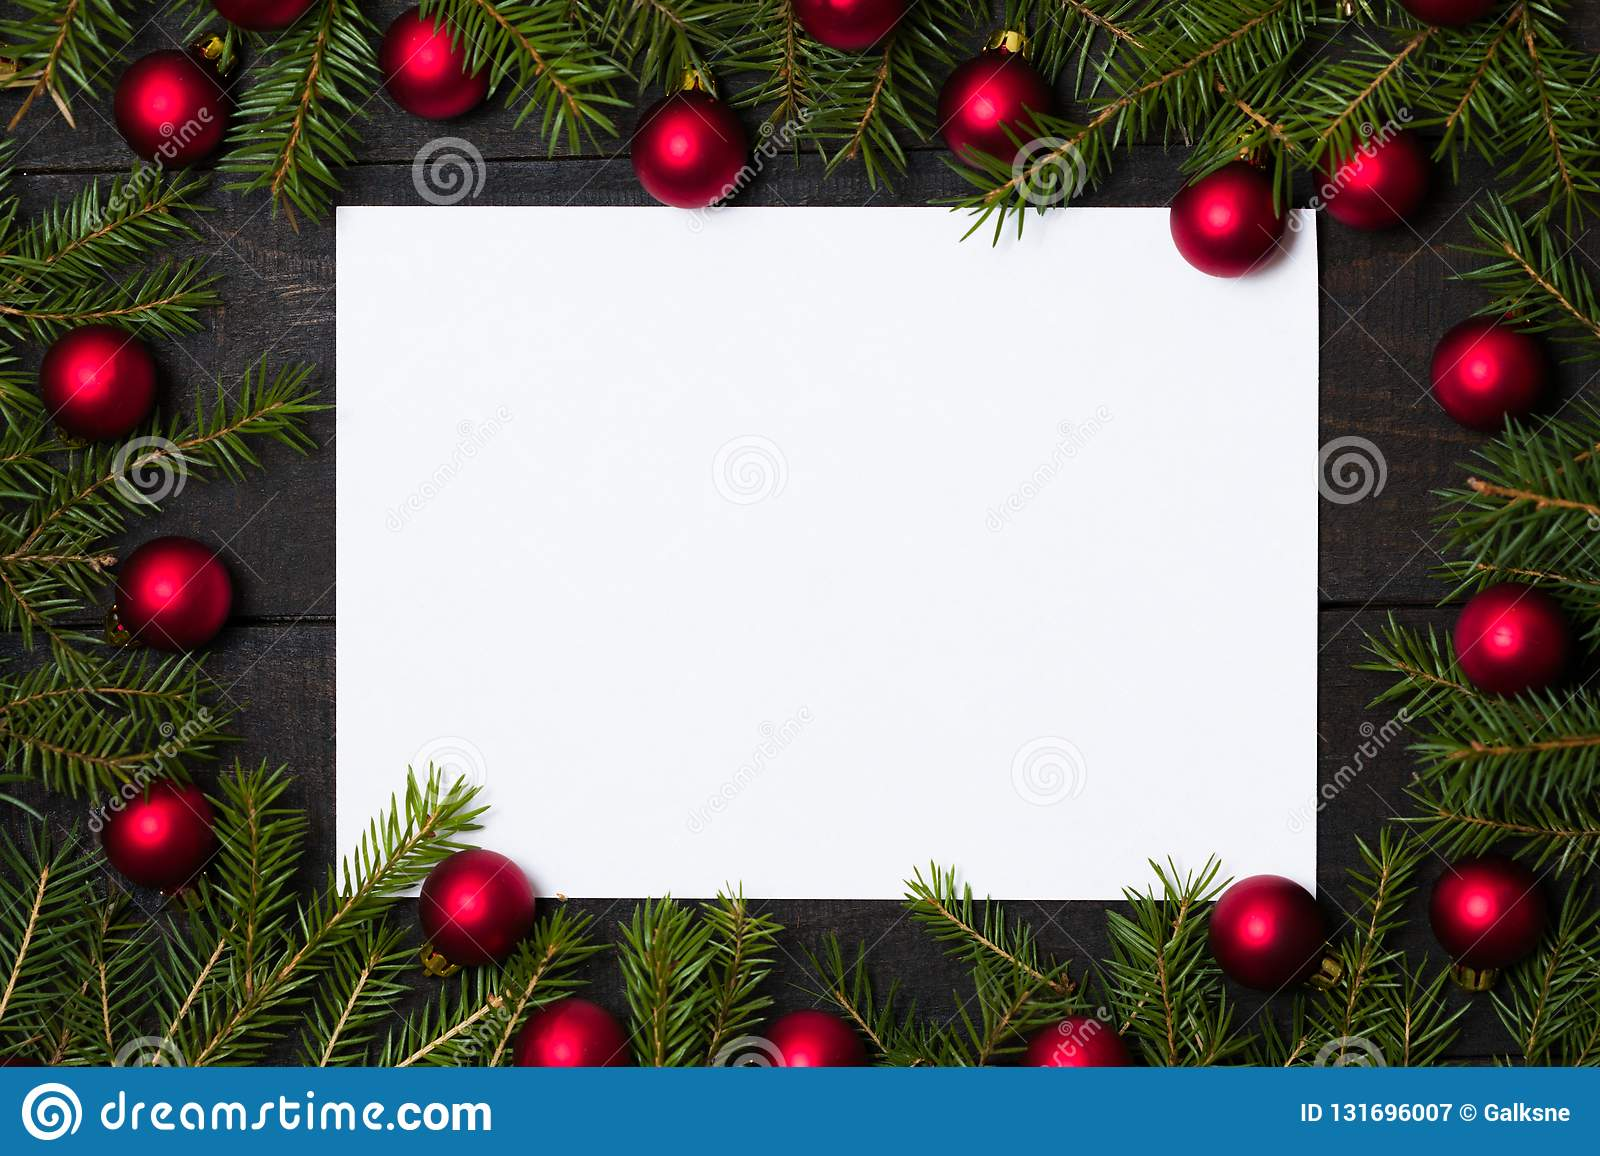 Dark rustic wood table flatlay - empty card on Christmas background with red ball ornament decoration and fir branch frame. Top